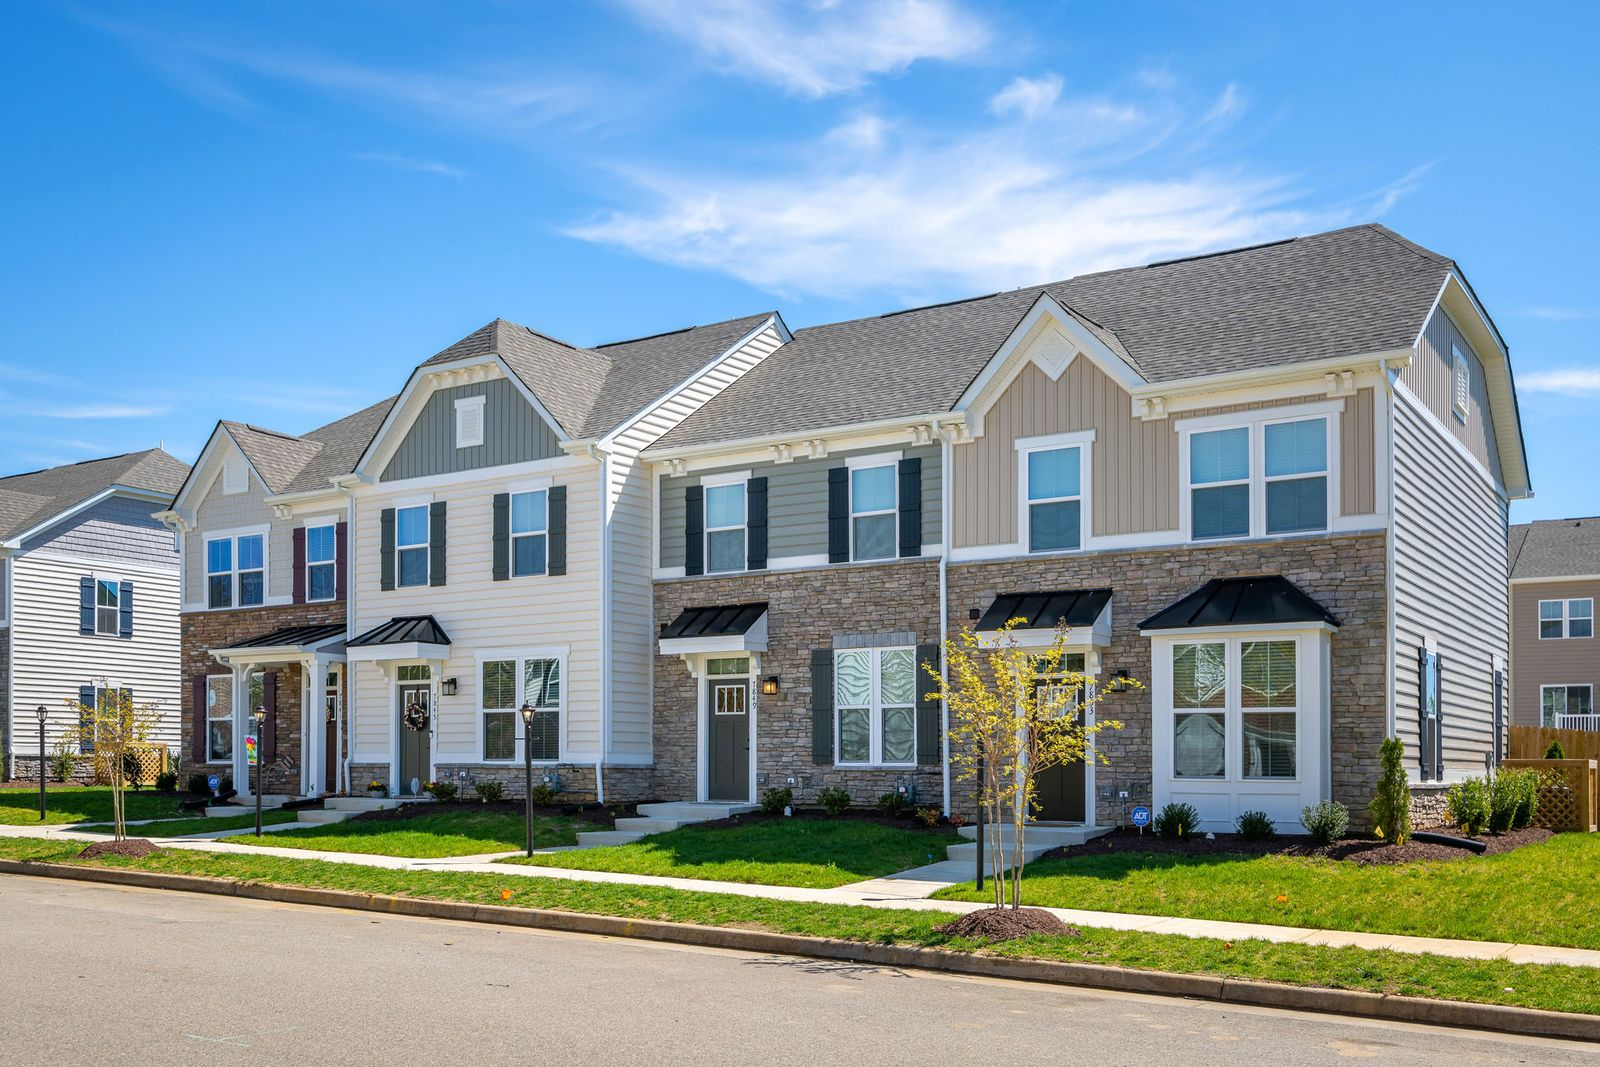 Welcoming 16 new homeowners to Spring Park since opening for VIP sales!:GRAND OPENING AT SPRING PARK! Welcome to the Eastern Henrico location you love! New 3-bedroom townhomes with backyards, from the mid $200s.Schedule a visit today!